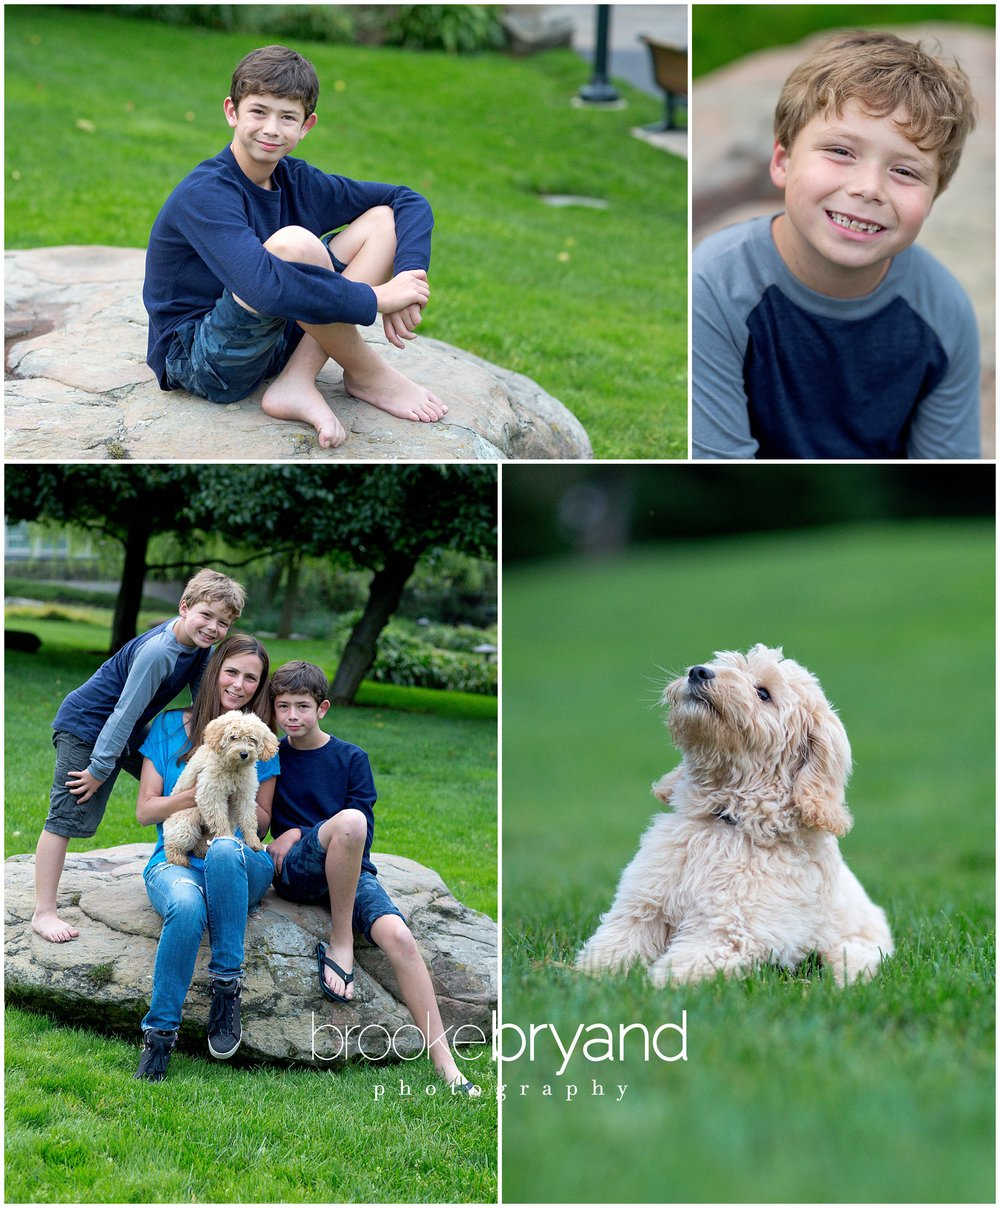 09.2014-Goodies-BBP_8647_San-Francisco-Family-Photos-Brooke-Bryand-Photography.jpg